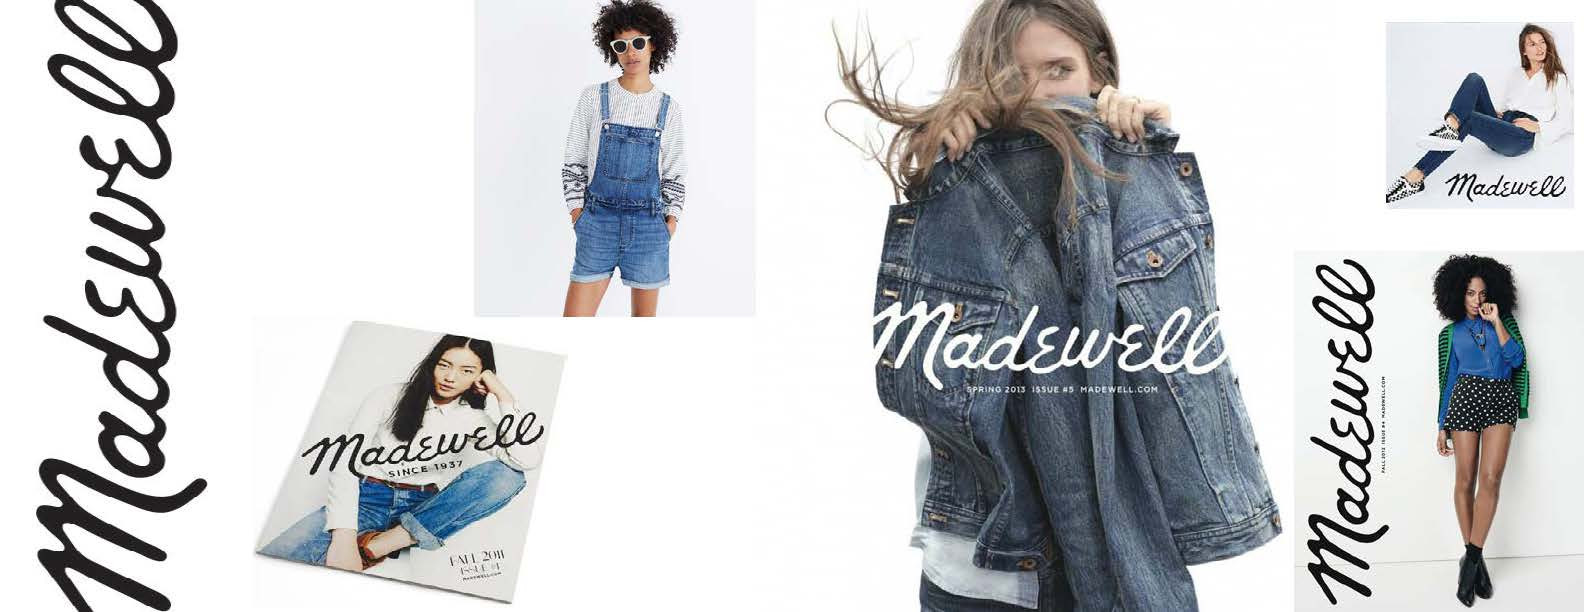 FREE PEOPLE BUYING PROJECT_Page_23.jpg